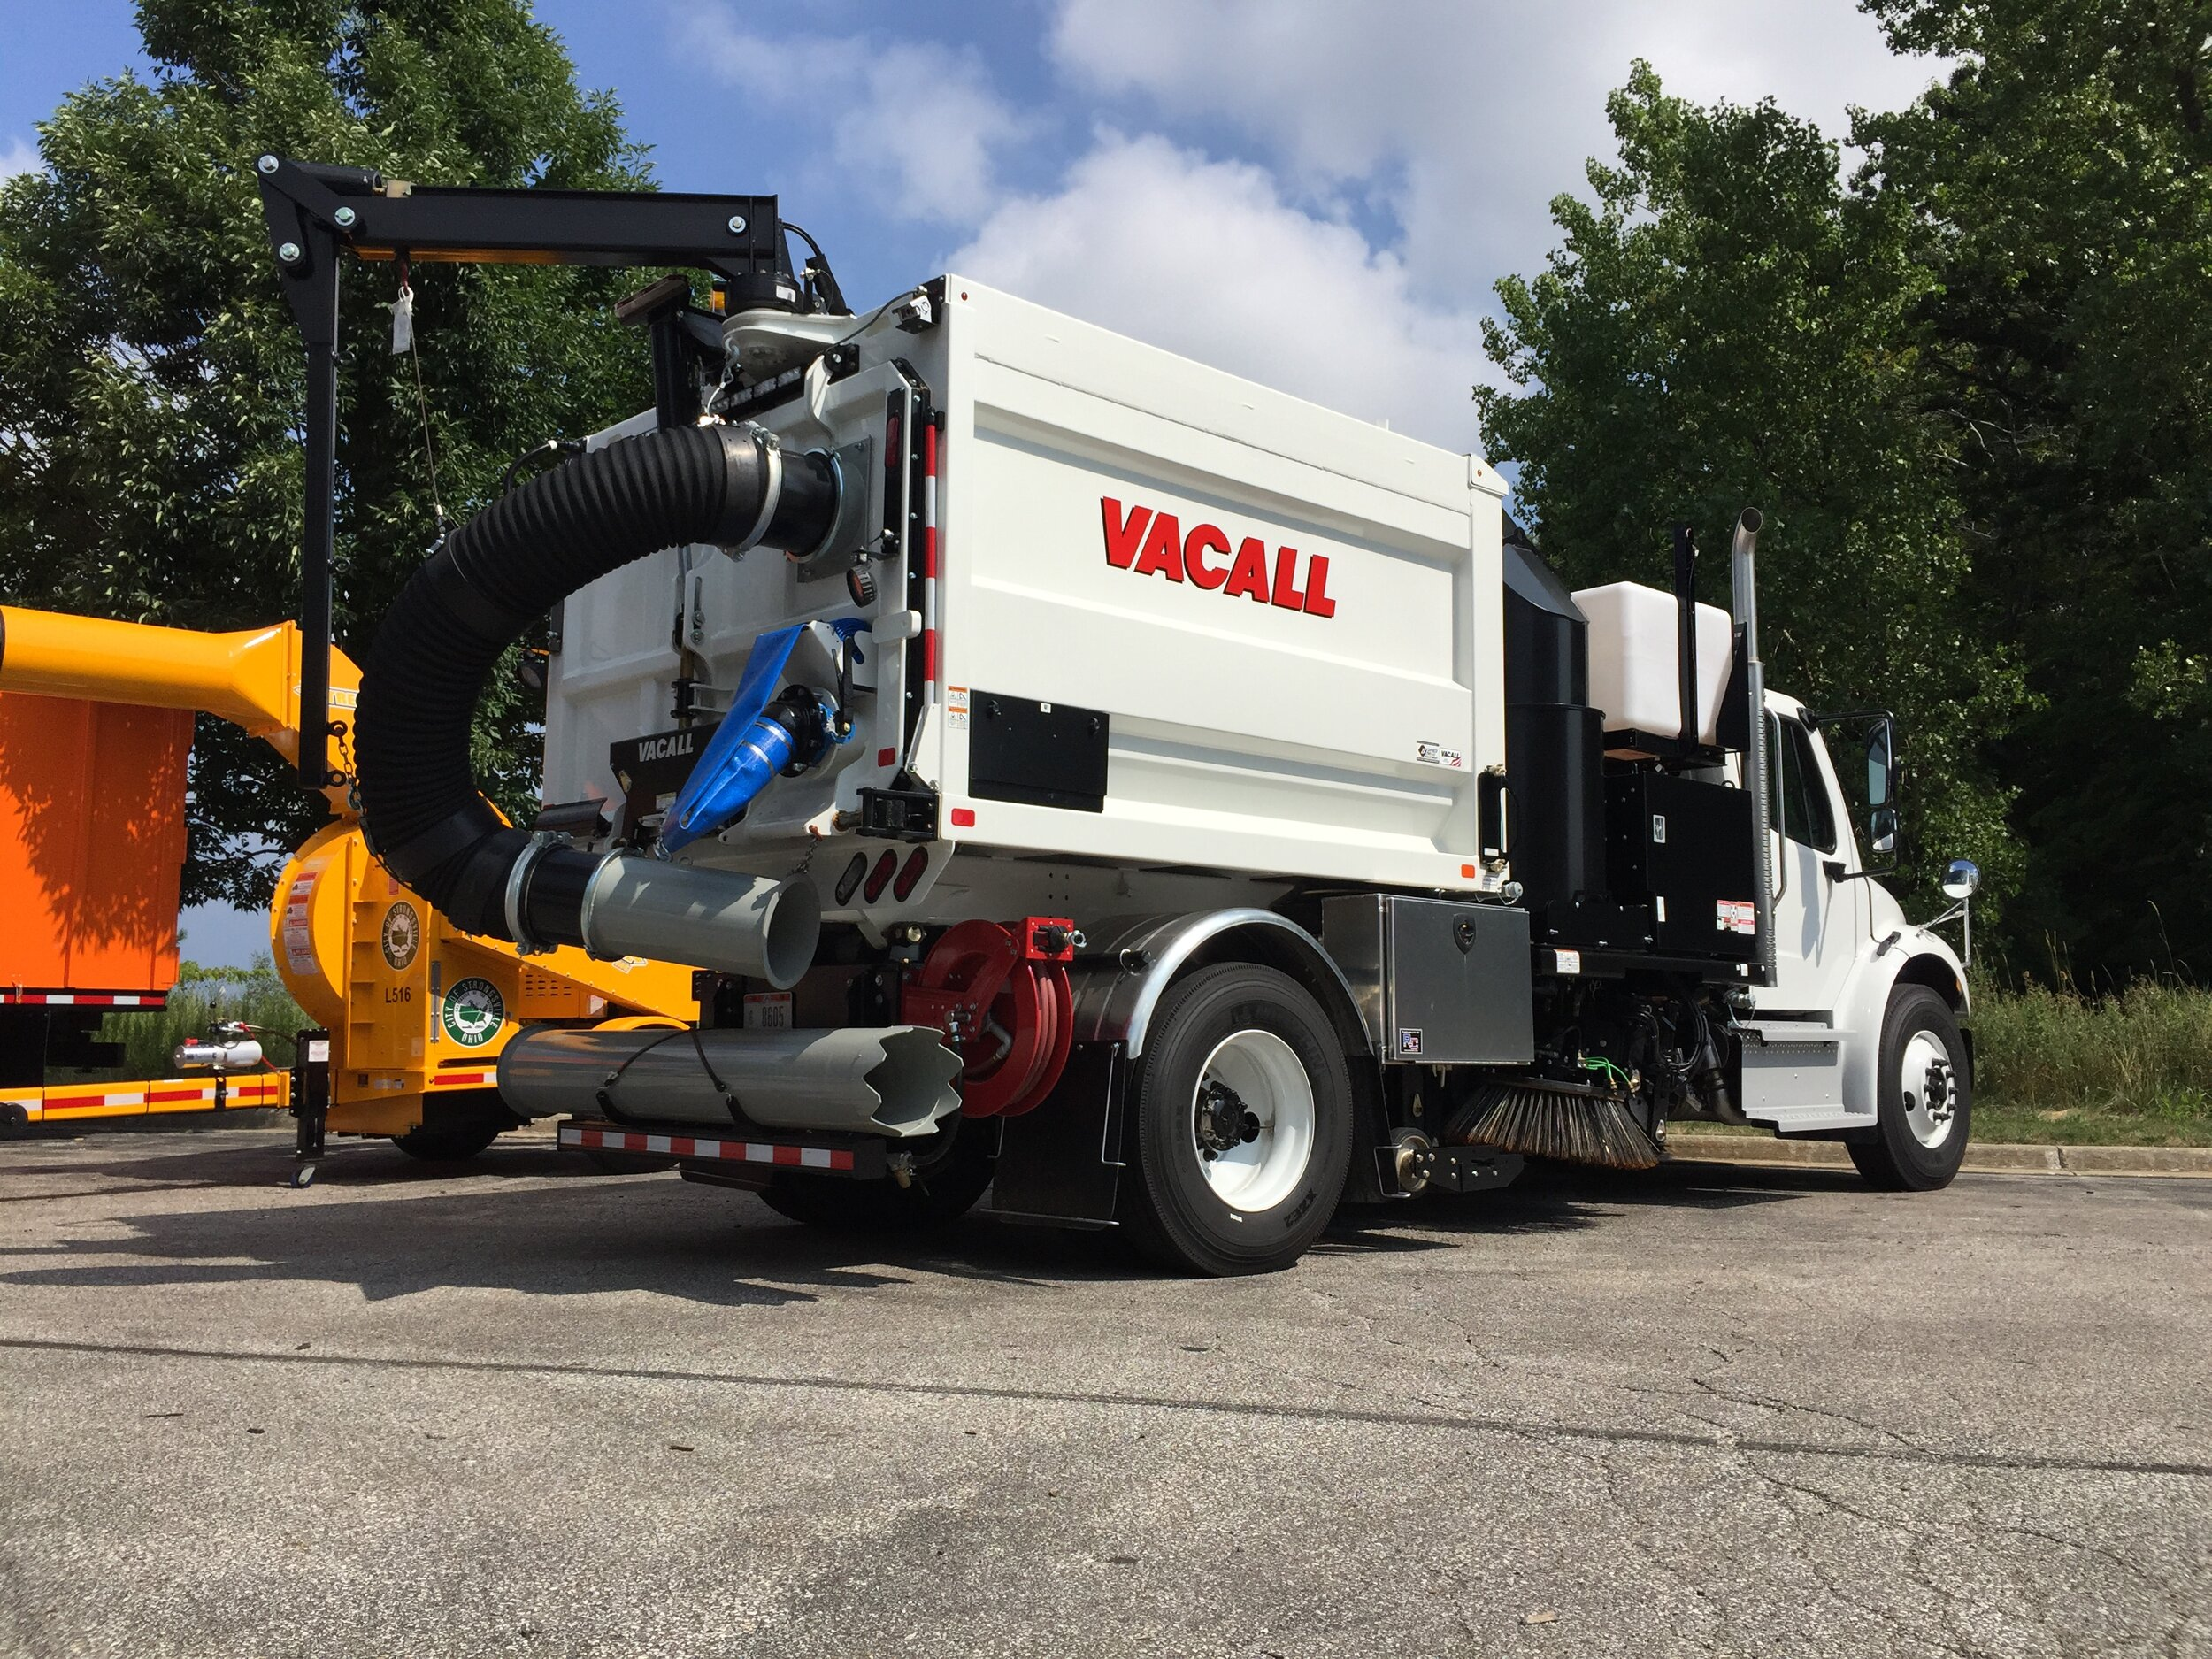 vacall - sTREET SWEEPERS